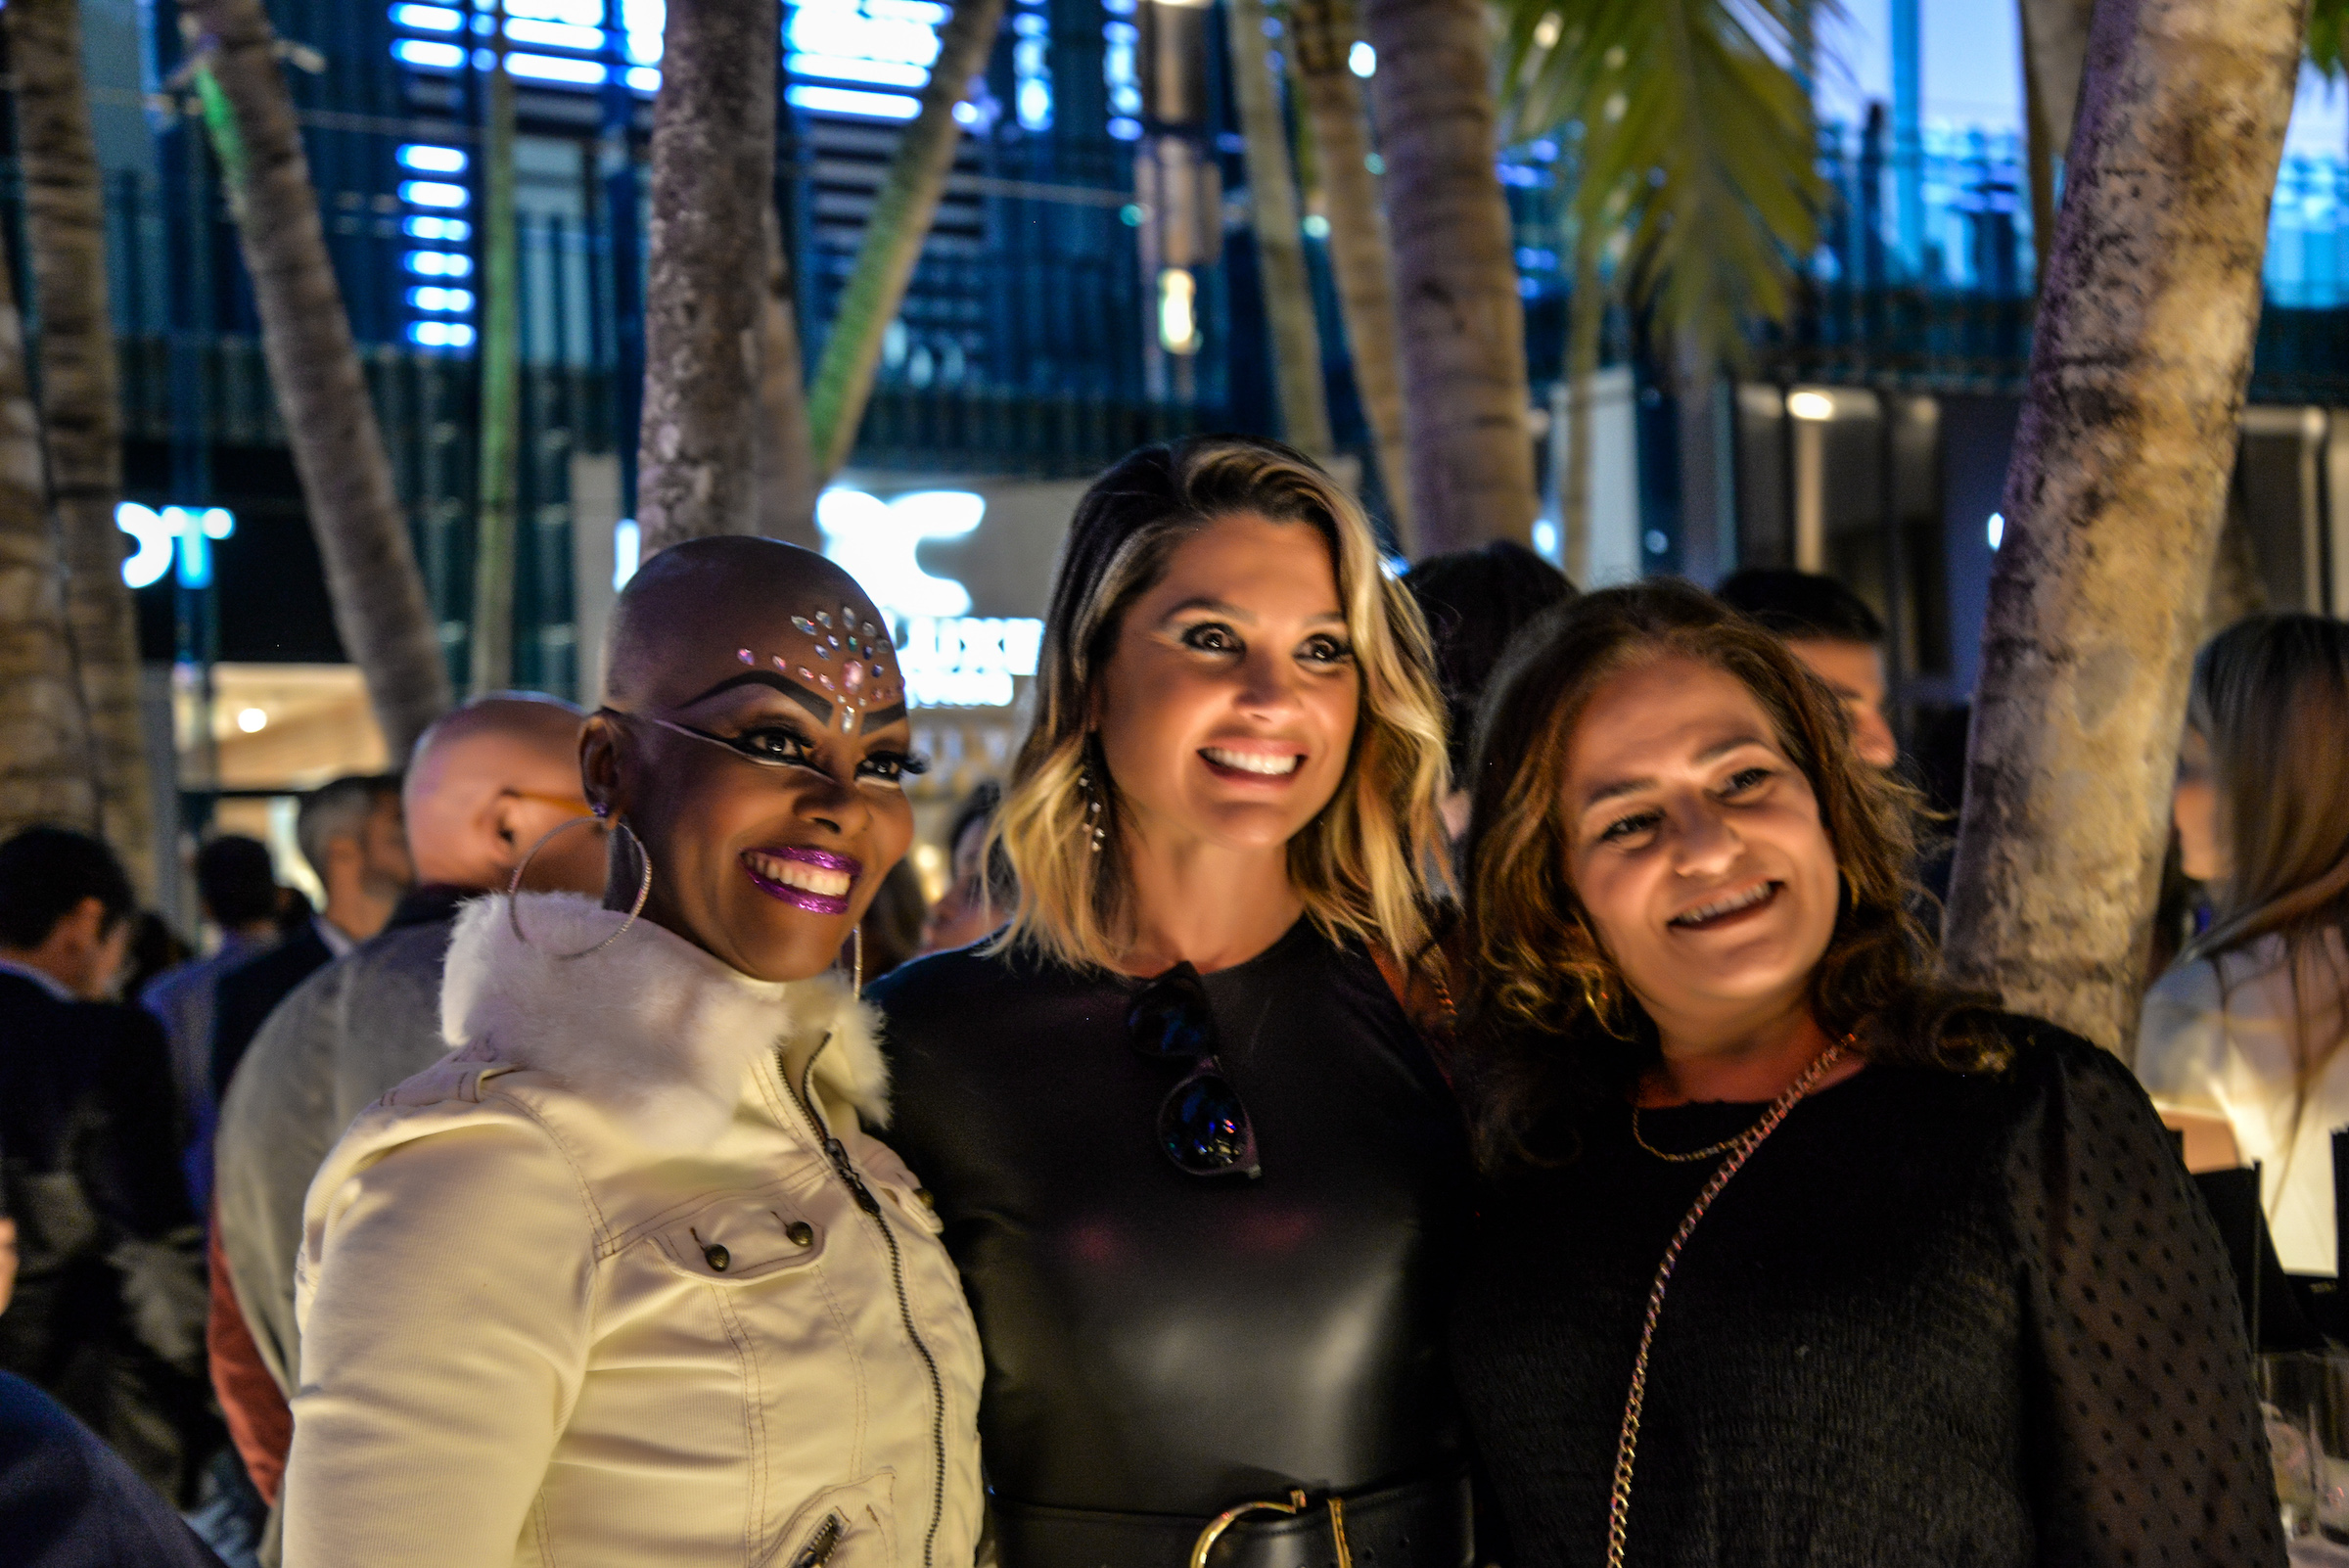 Flavia Alessandra BrazilFoundation Miami PreGala Cocktail Reception 2018 Miami Design District Philanthropy Florida